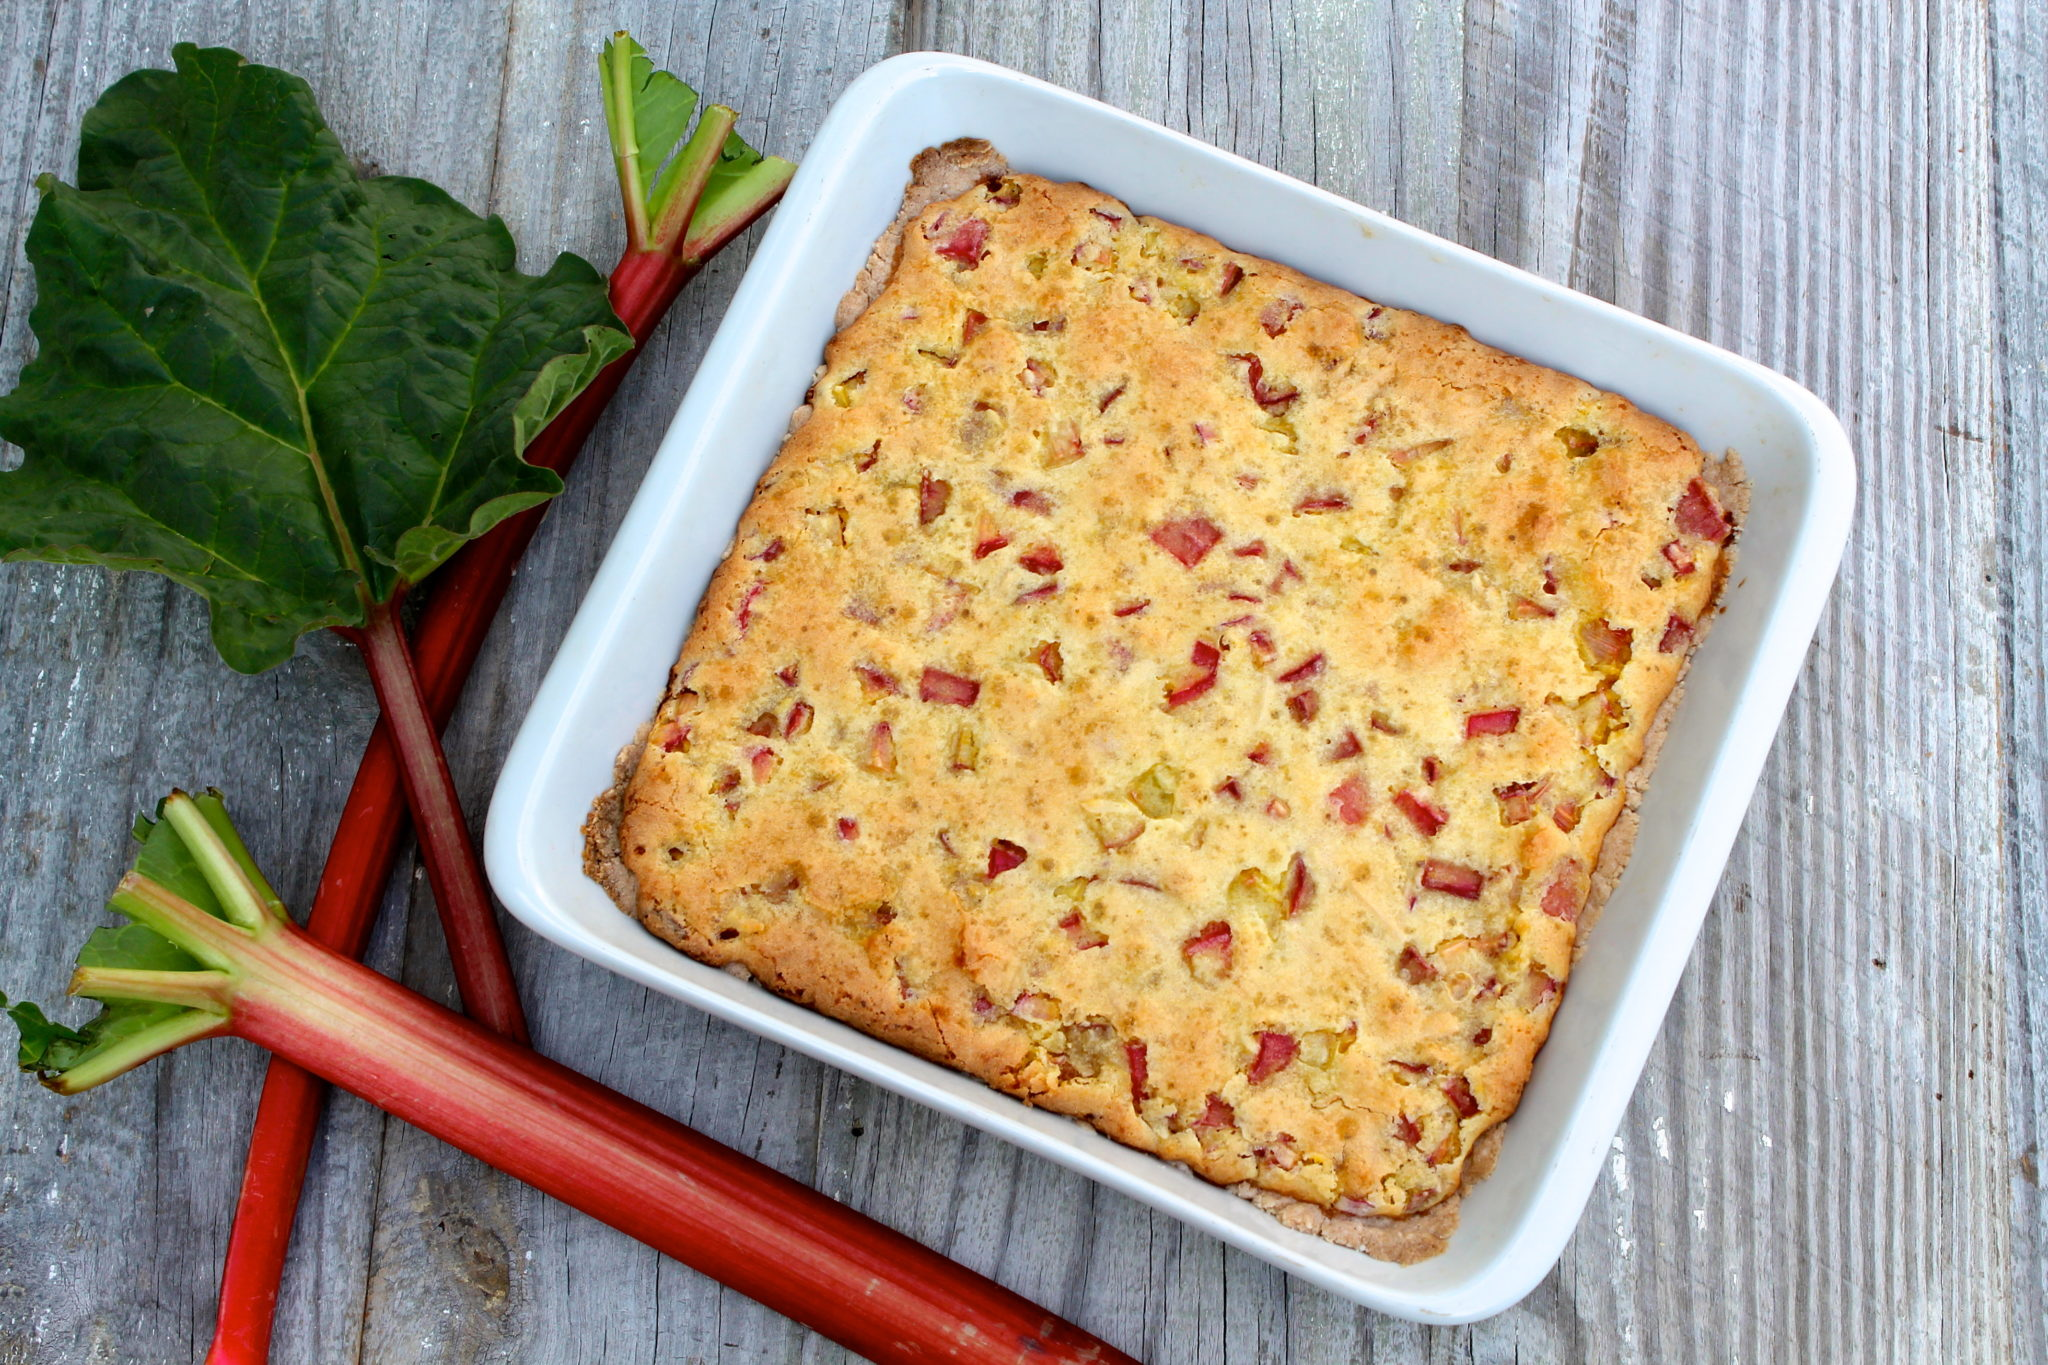 Ginger Almond Rhubarb Bars with Coconut Crust